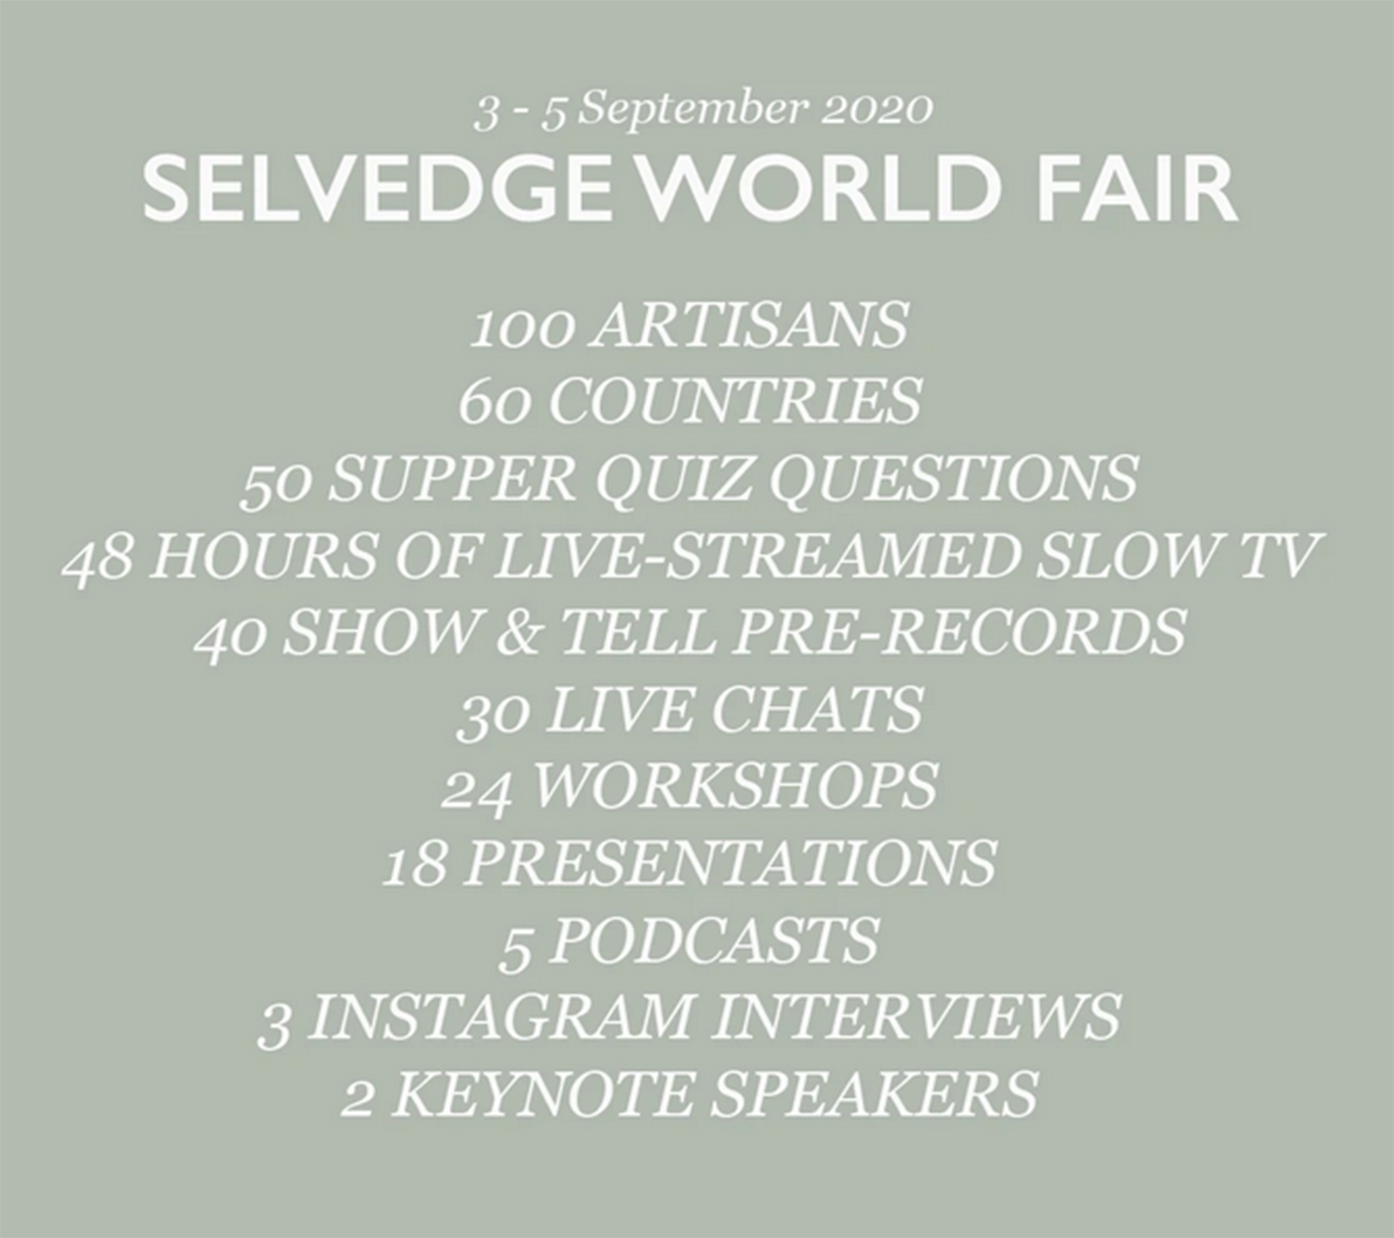 SELVEDGE WORLD FAIR